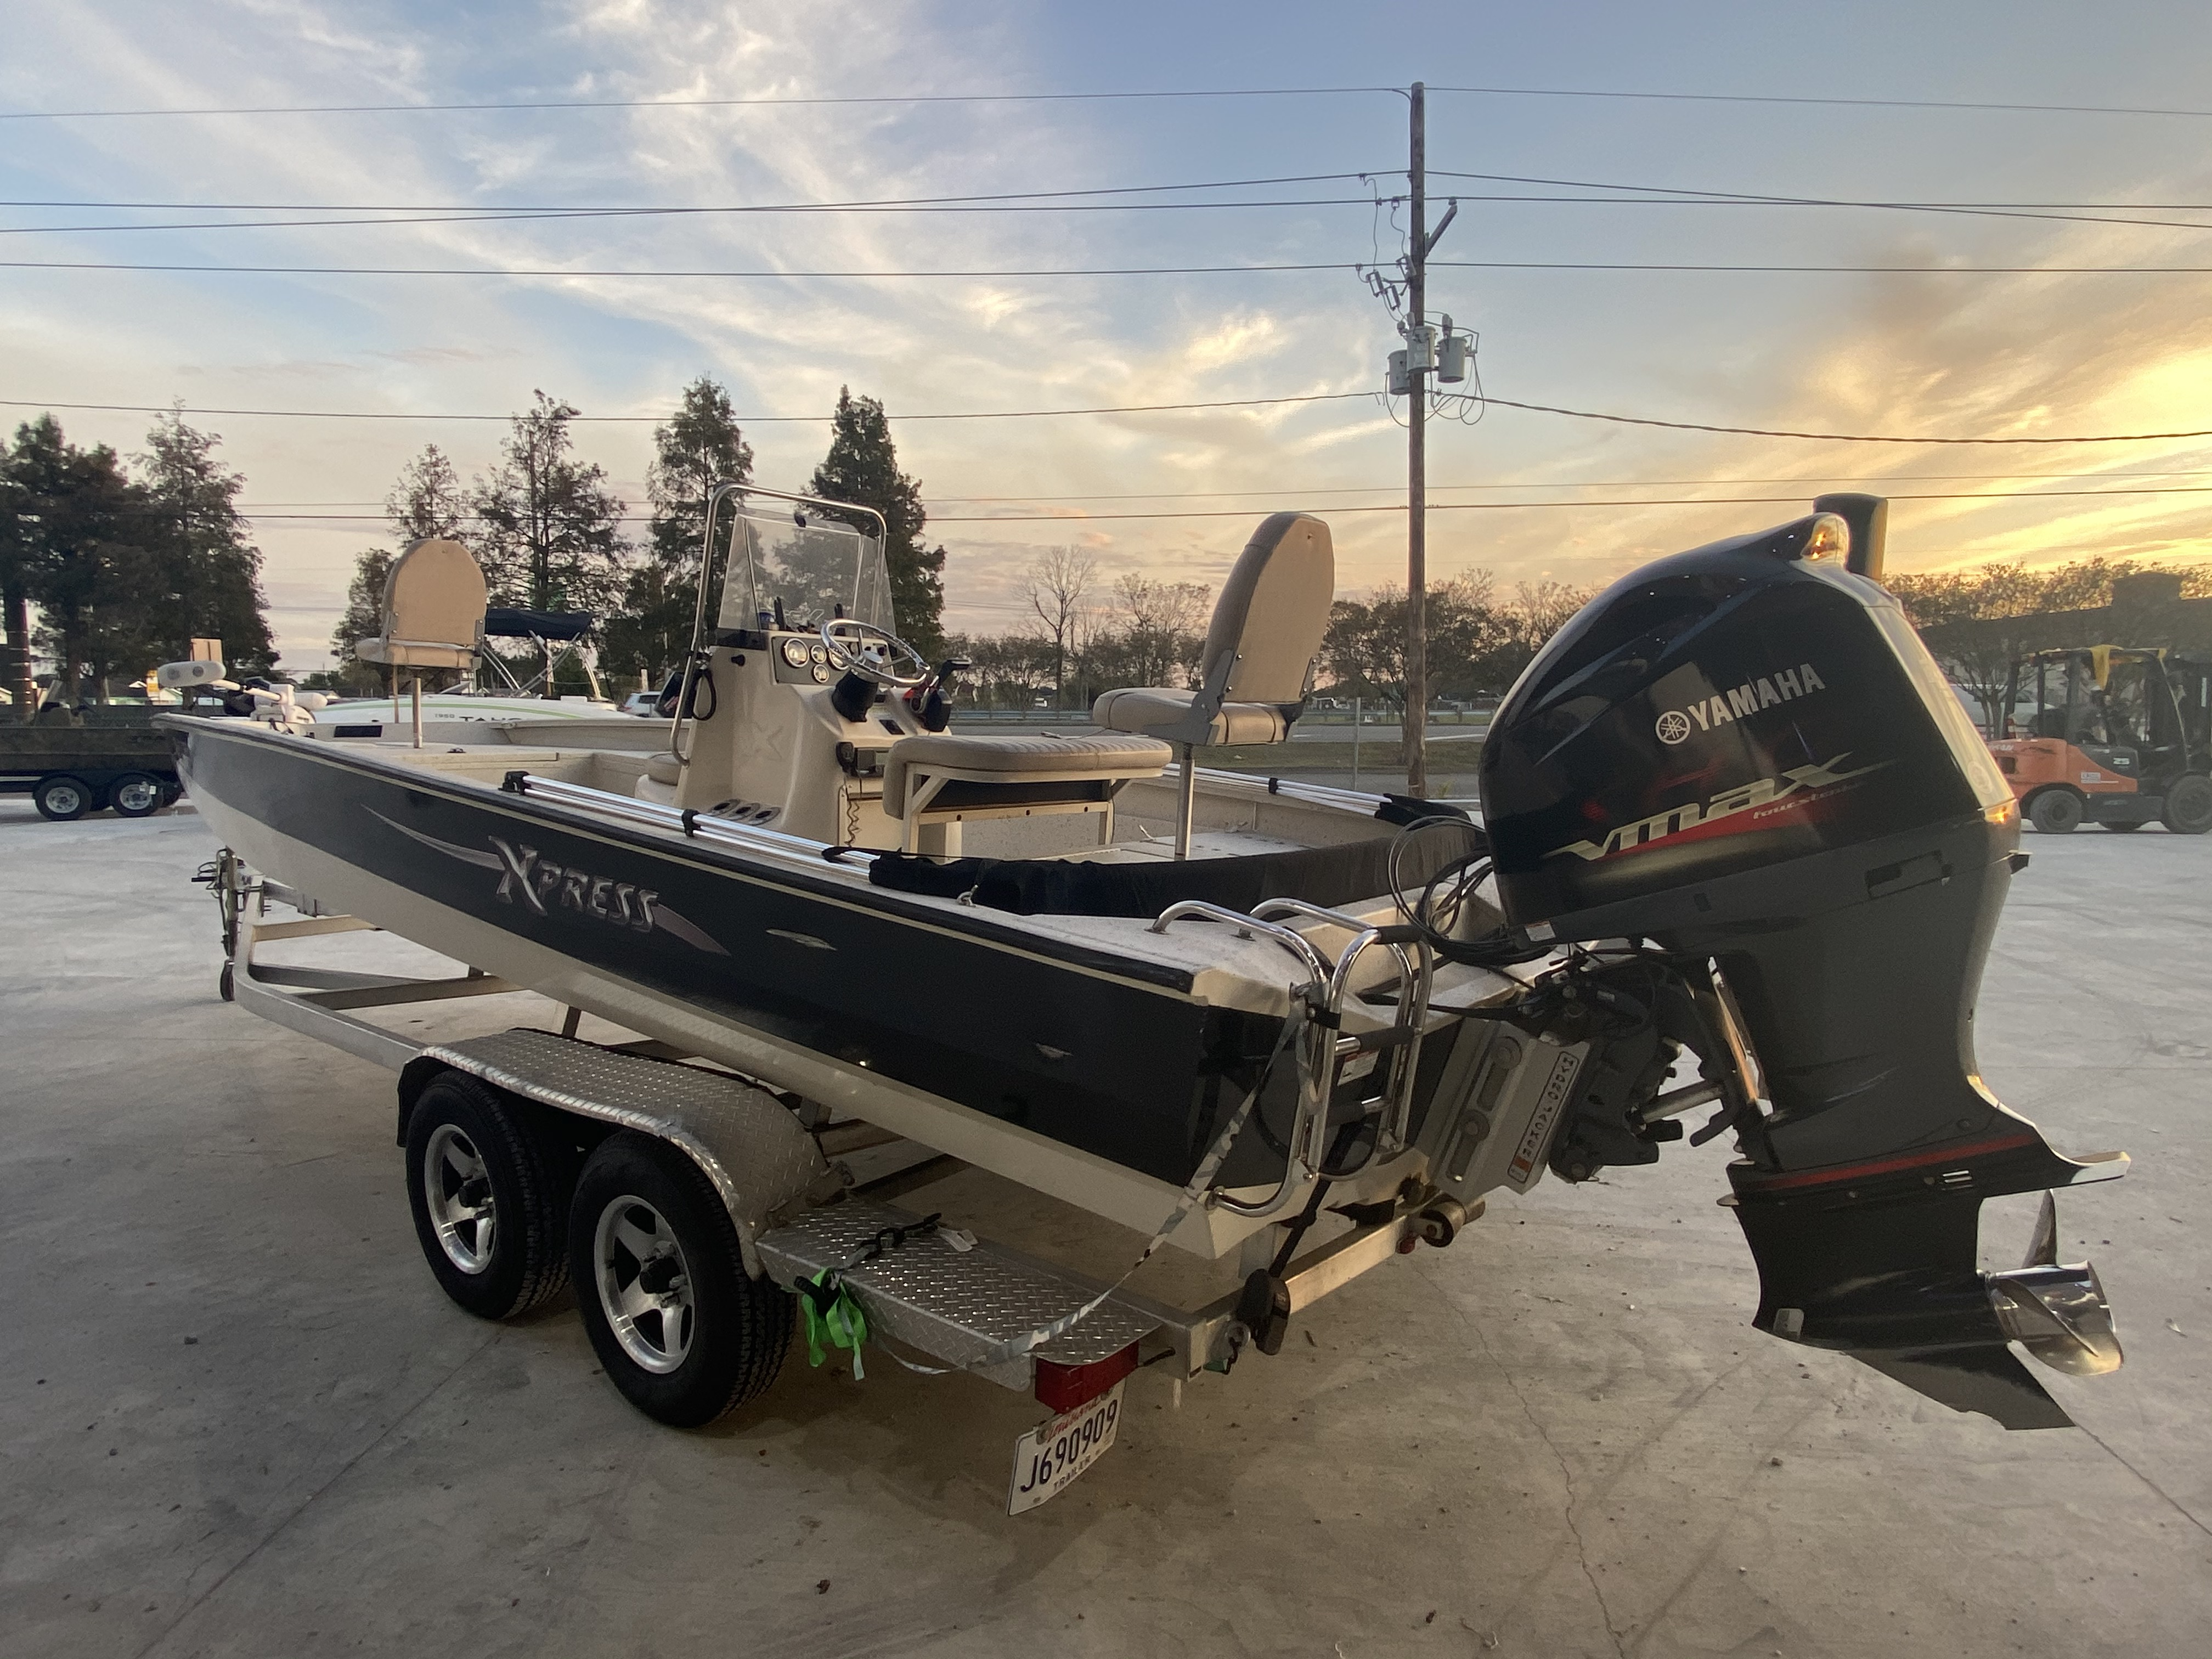 2012 Xpress boat for sale, model of the boat is H24B & Image # 4 of 17